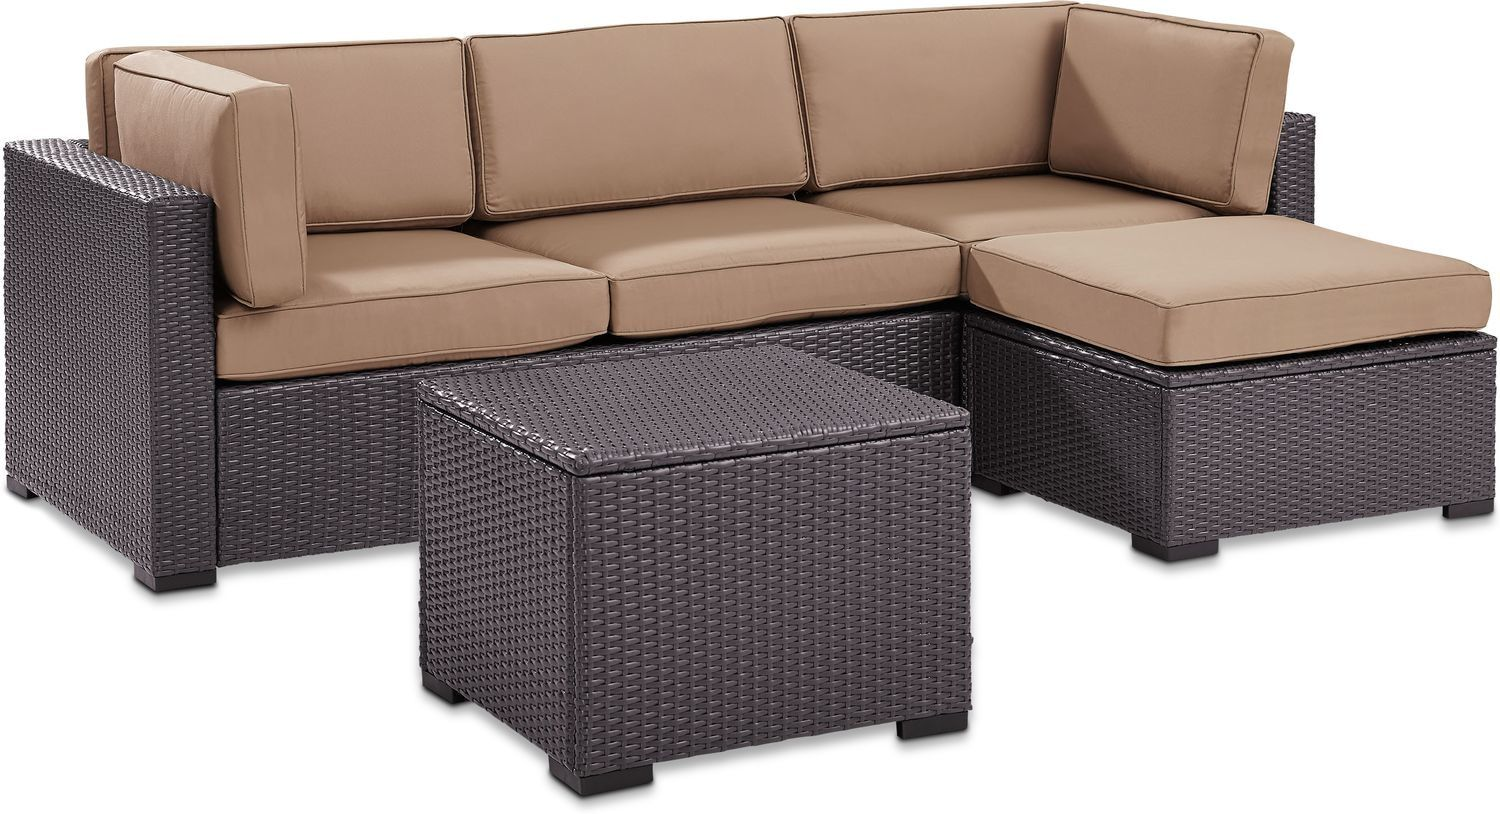 Isla 2 Piece Outdoor Sofa Ottoman And Coffee Table Set Value City Furniture And Mattresses Value City Furniture Outdoor Sofa Outdoor Patio Set